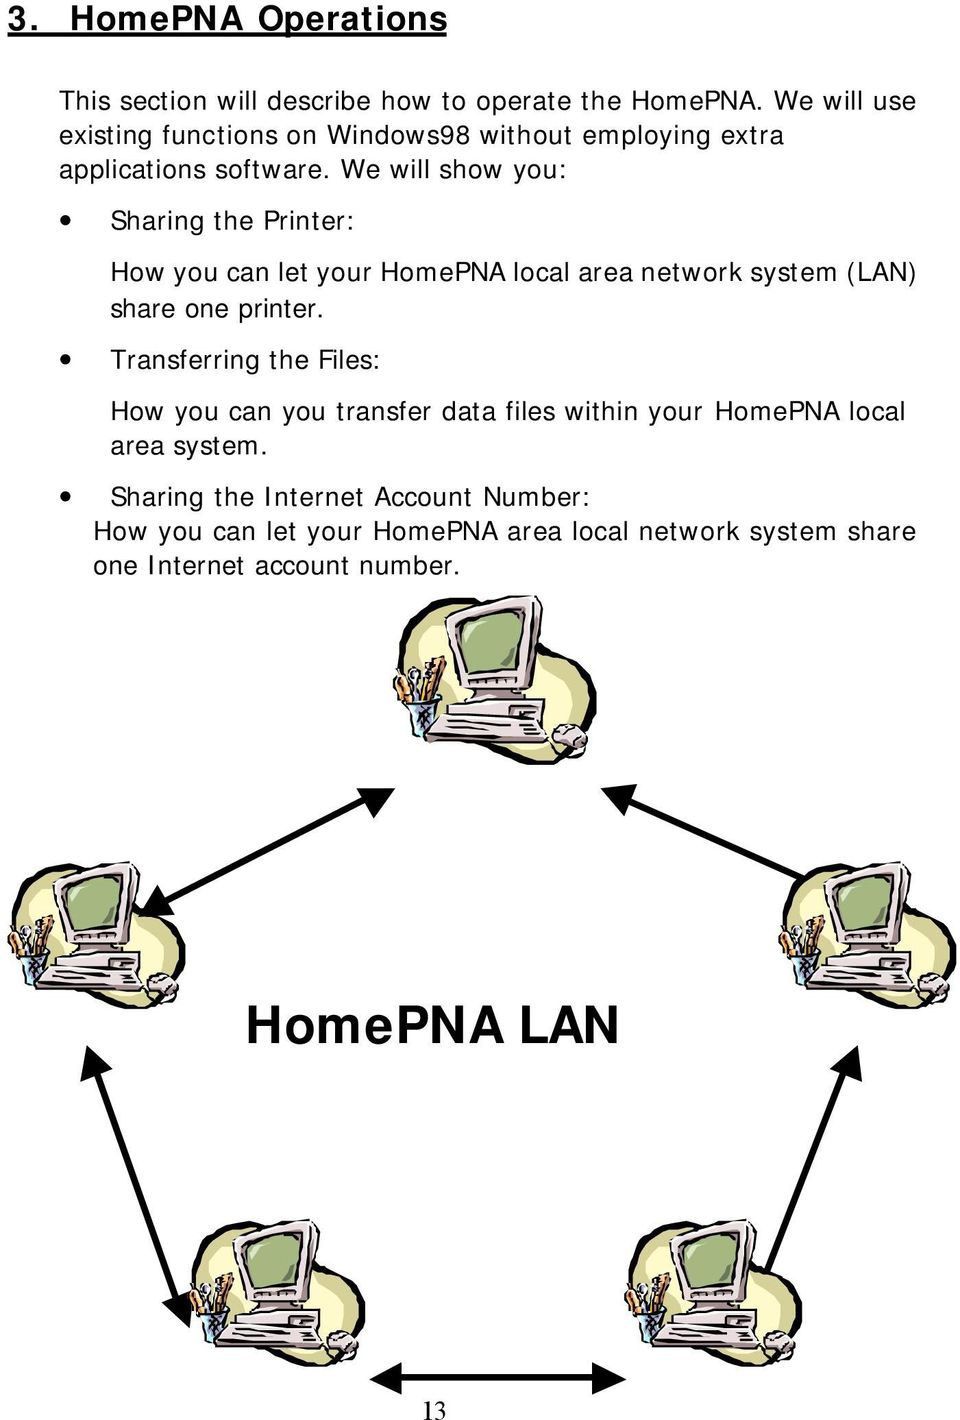 We will show you: Sharing the Printer: How you can let your HomePNA local area network system (LAN) share one printer.